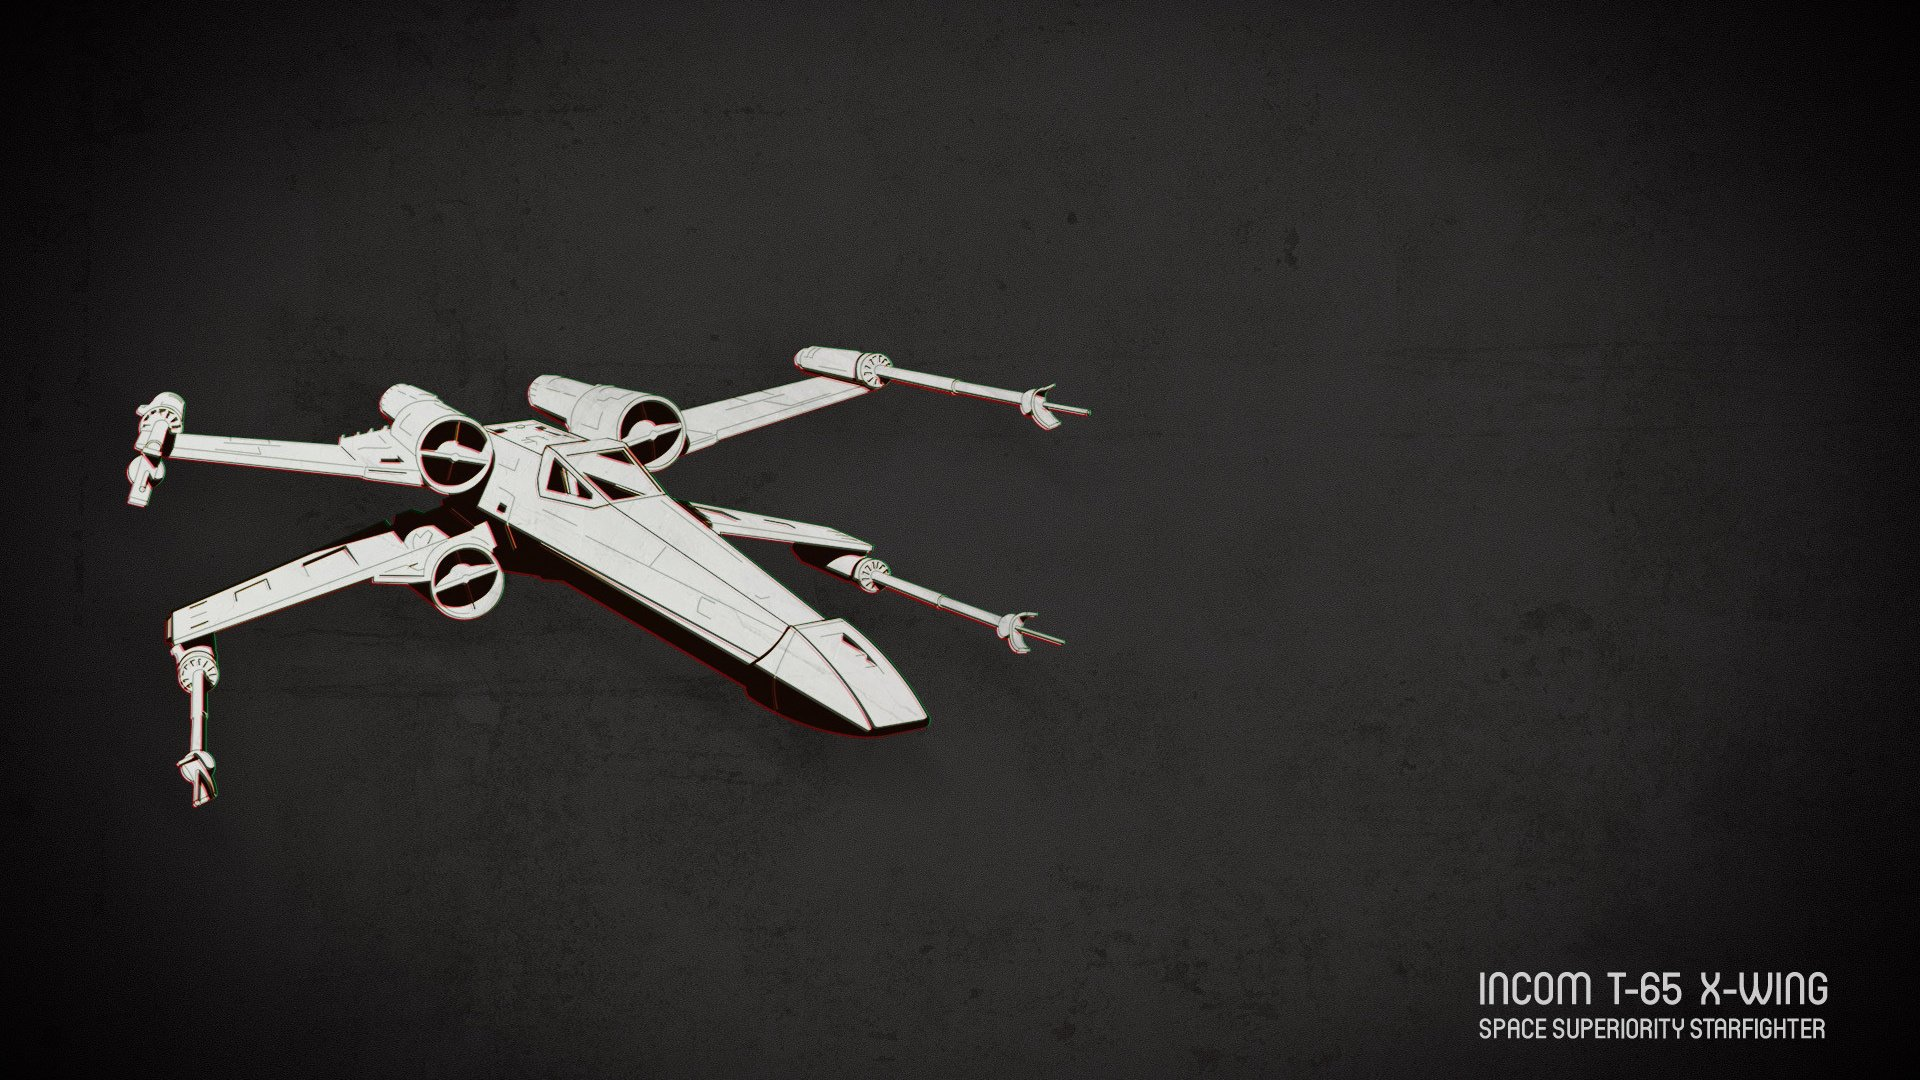 Free Download Star Wars X Wing Vs Tie Fighter Hd Wallpaper Background Image 1920x1080 For Your Desktop Mobile Tablet Explore 30 Star Wars Space Background Tie Star Wars Space